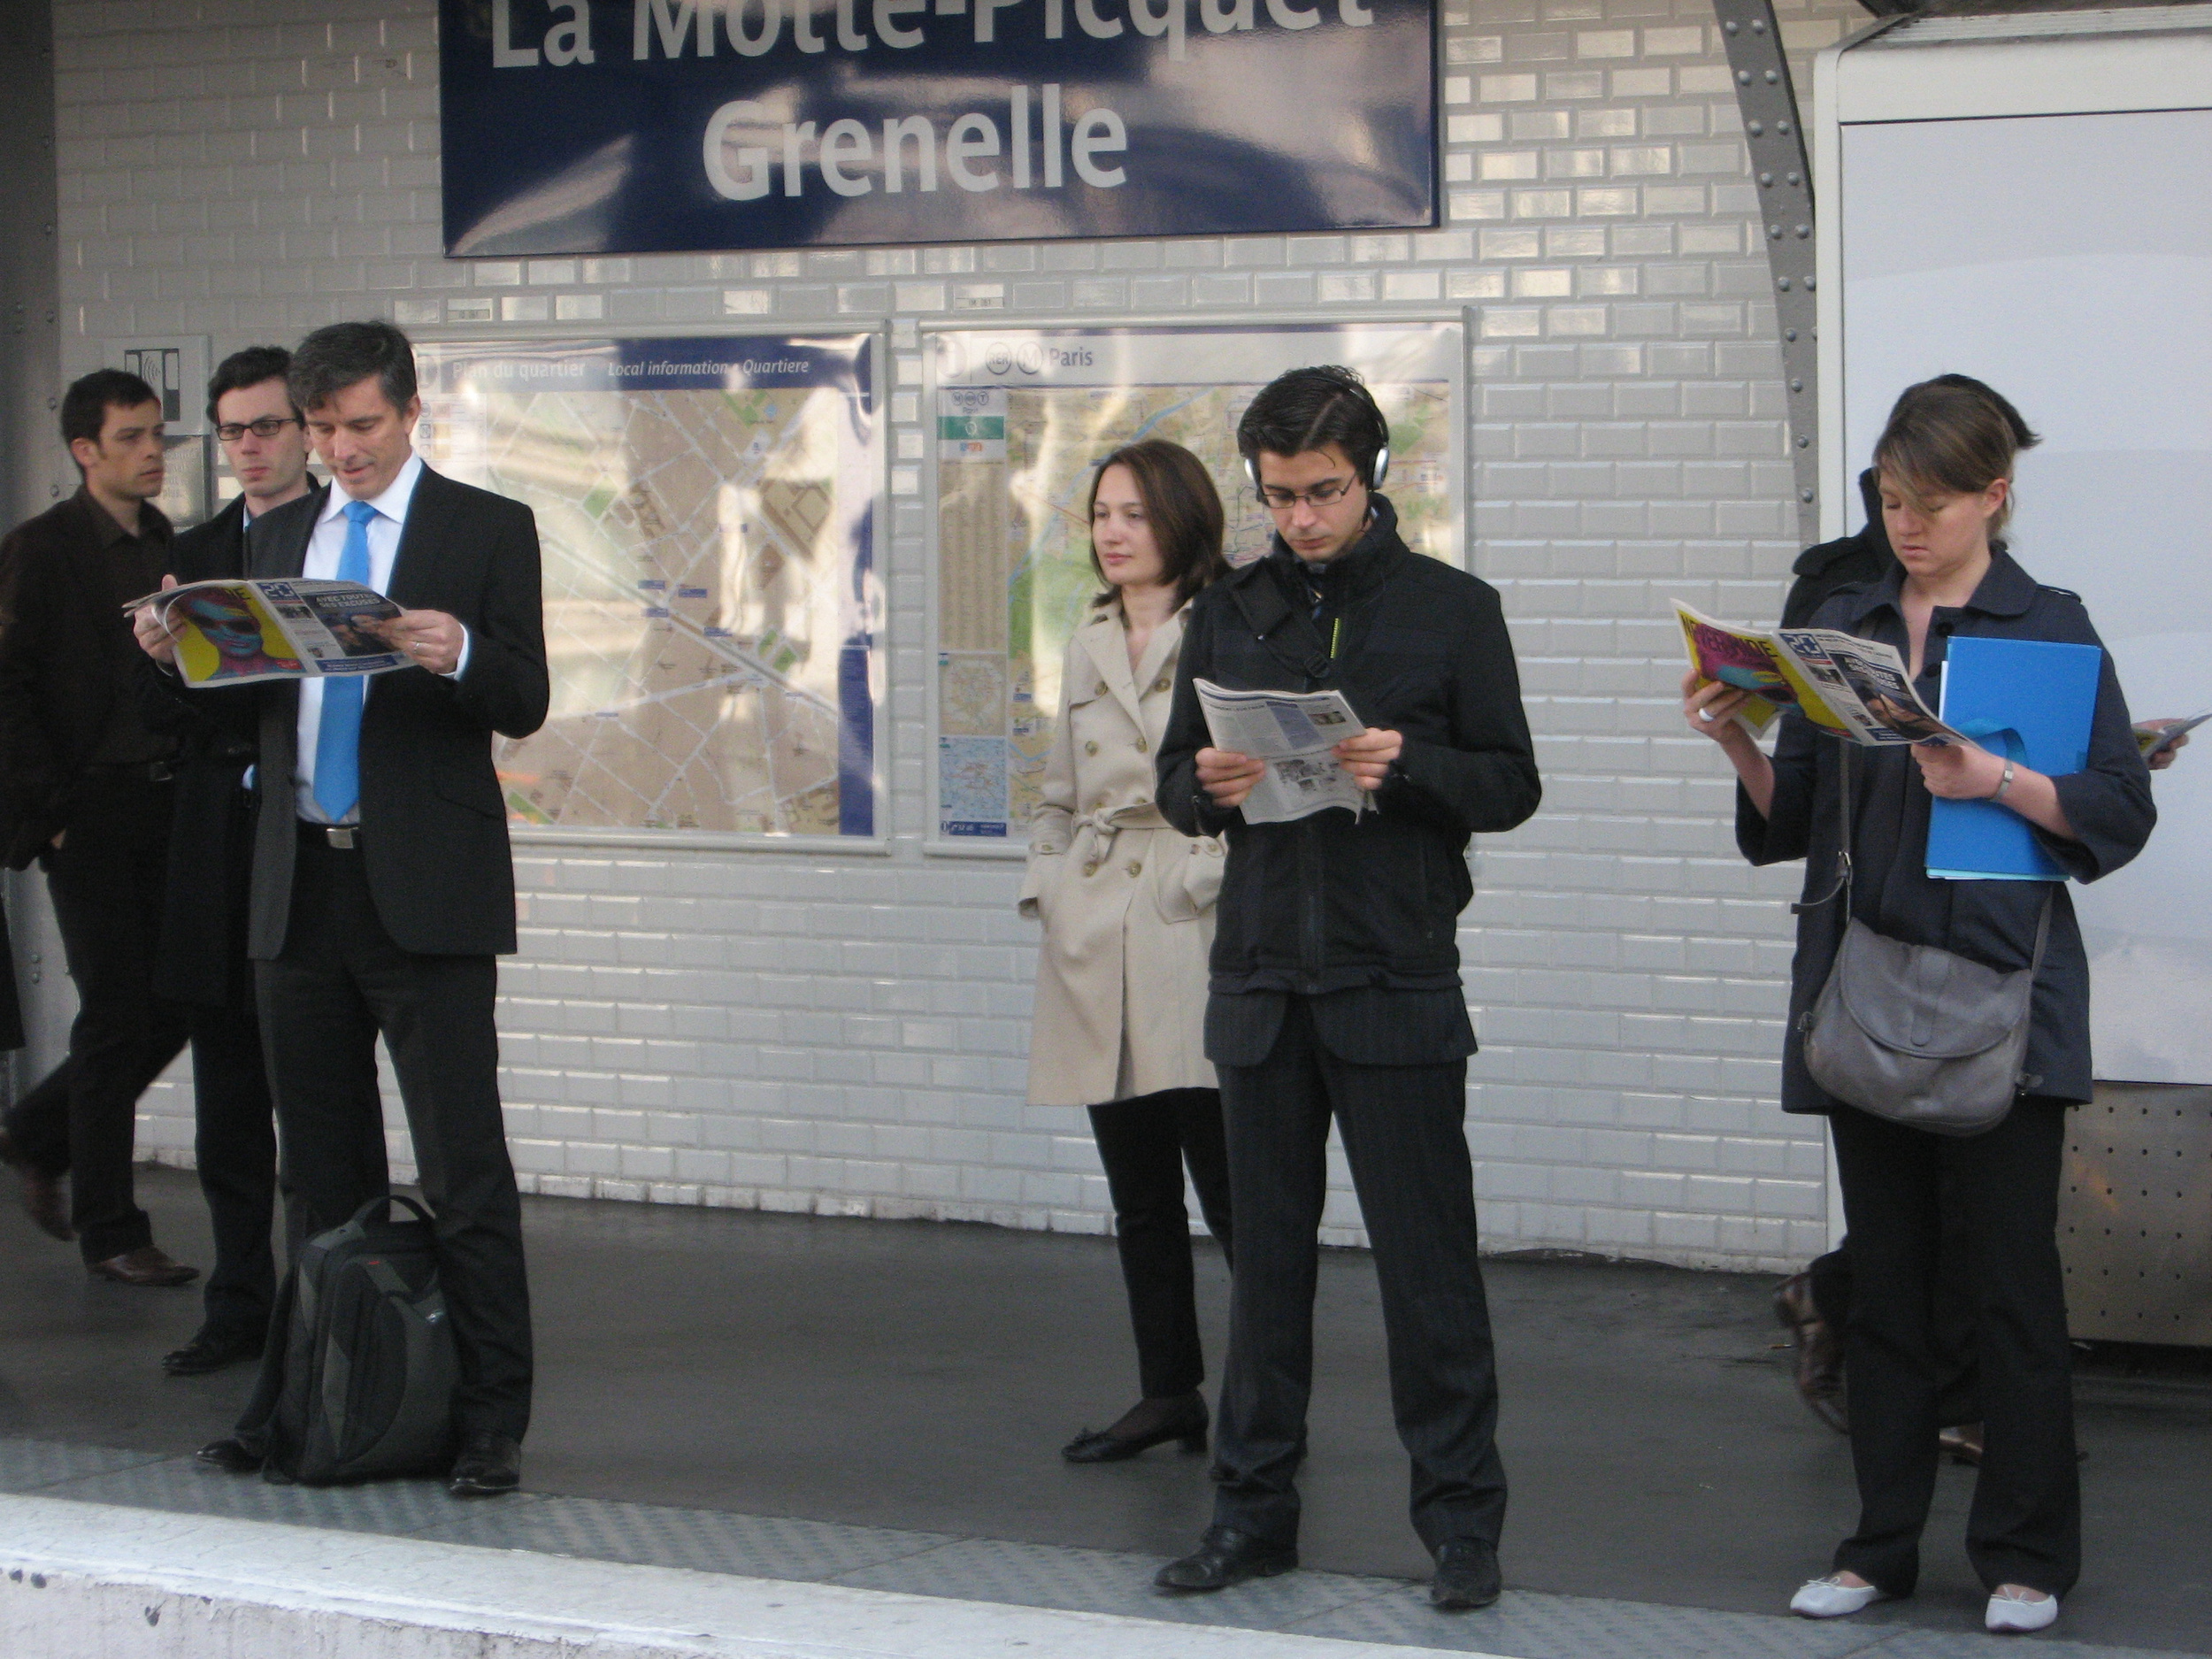 A cast of characters, all looking ahead ignoring each other. Dressed very fashionably. Visaully love the way the blue tie and blue folder connect. There is also an mysterious reflection in the background. No wonder Paris is such an inspirational place for artists.